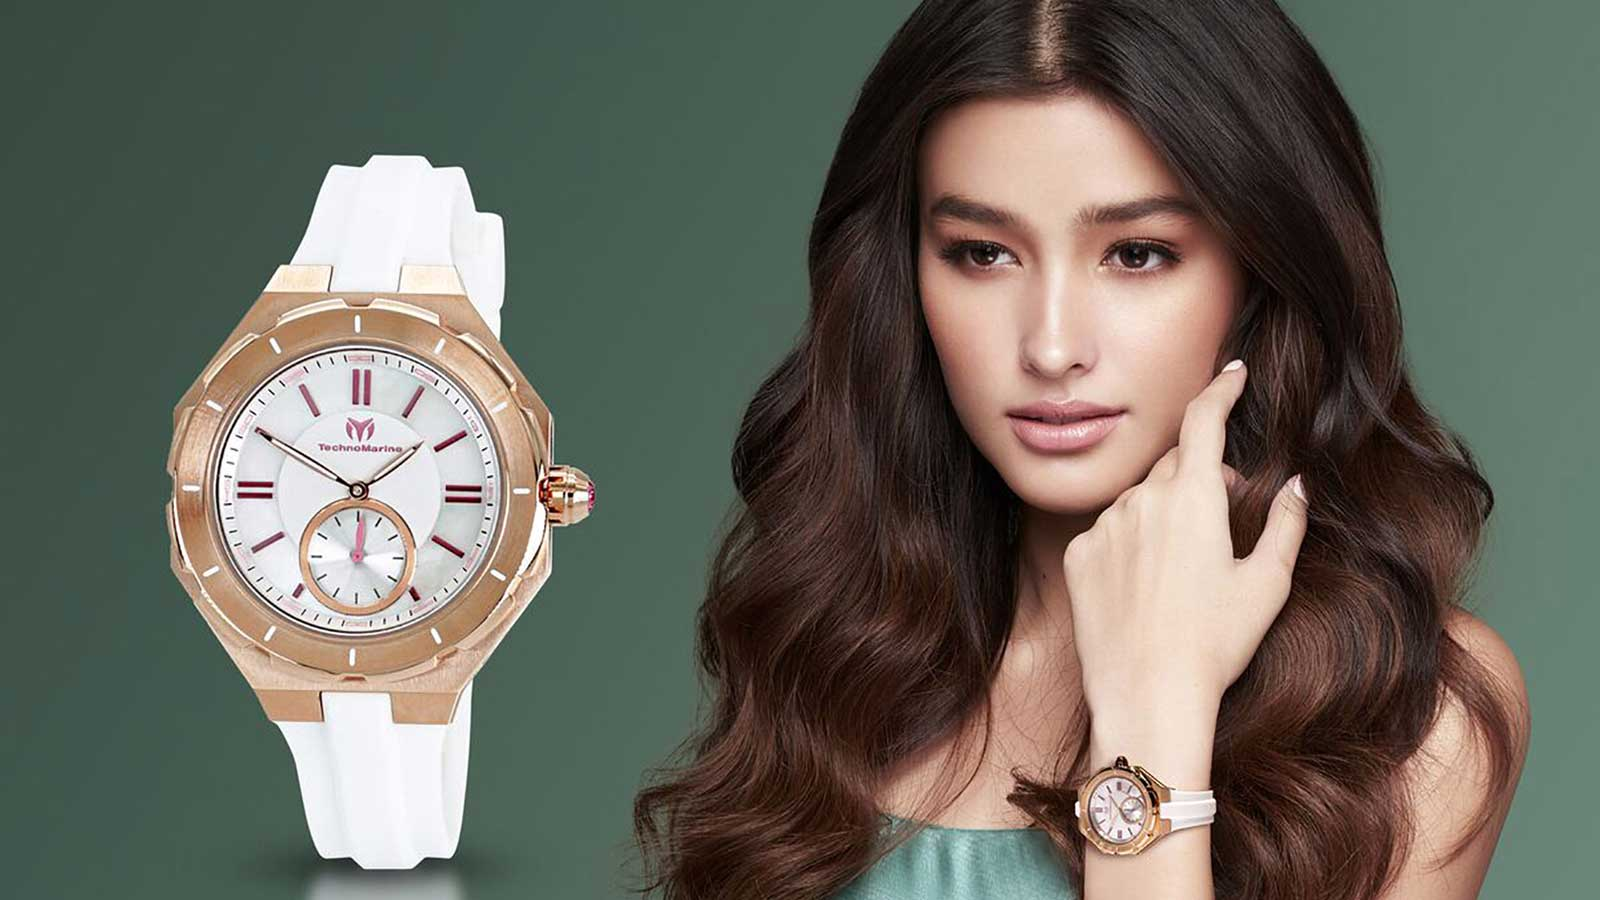 Ultra modern timepieces for special women this Christmas